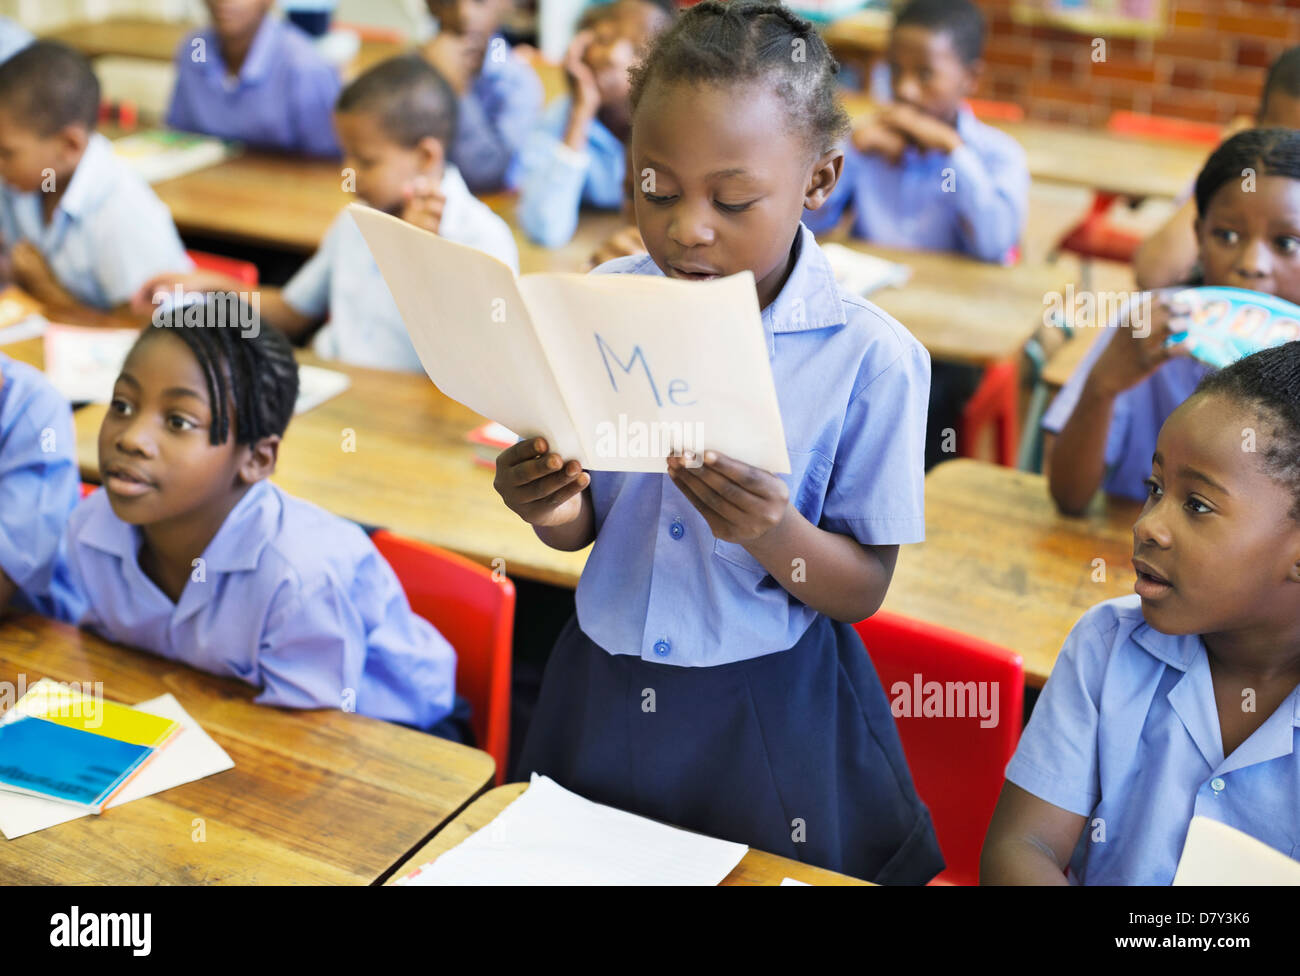 Student reading aloud in class - Stock Image